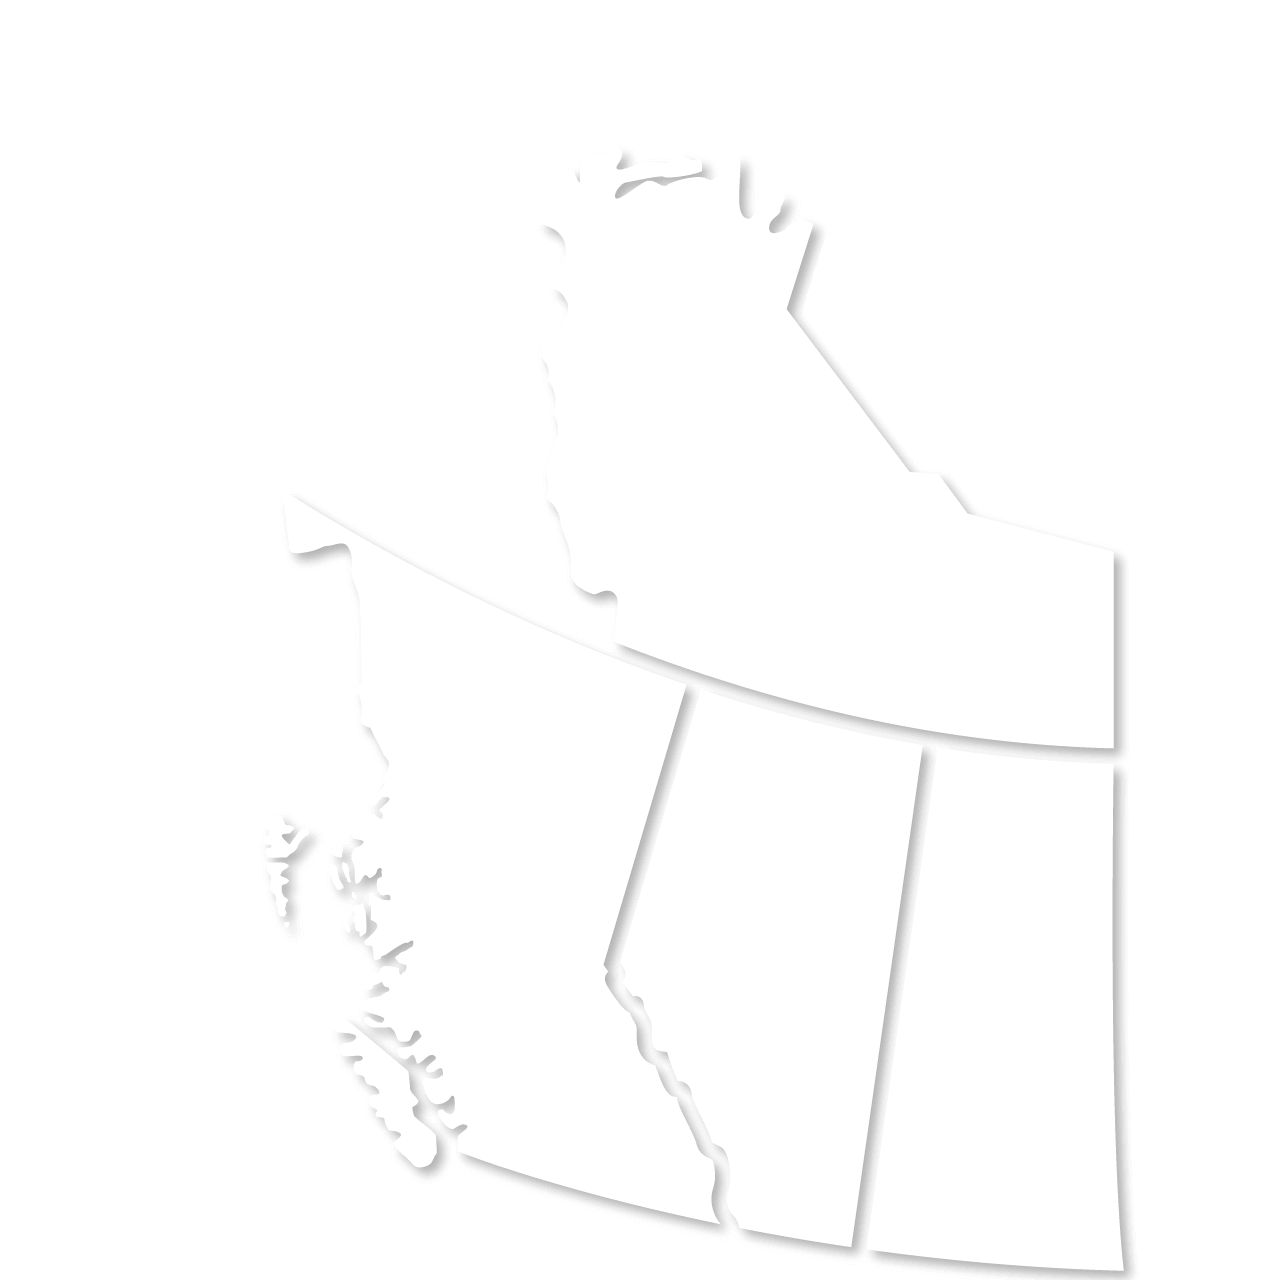 Map of Canada - Propane supplier